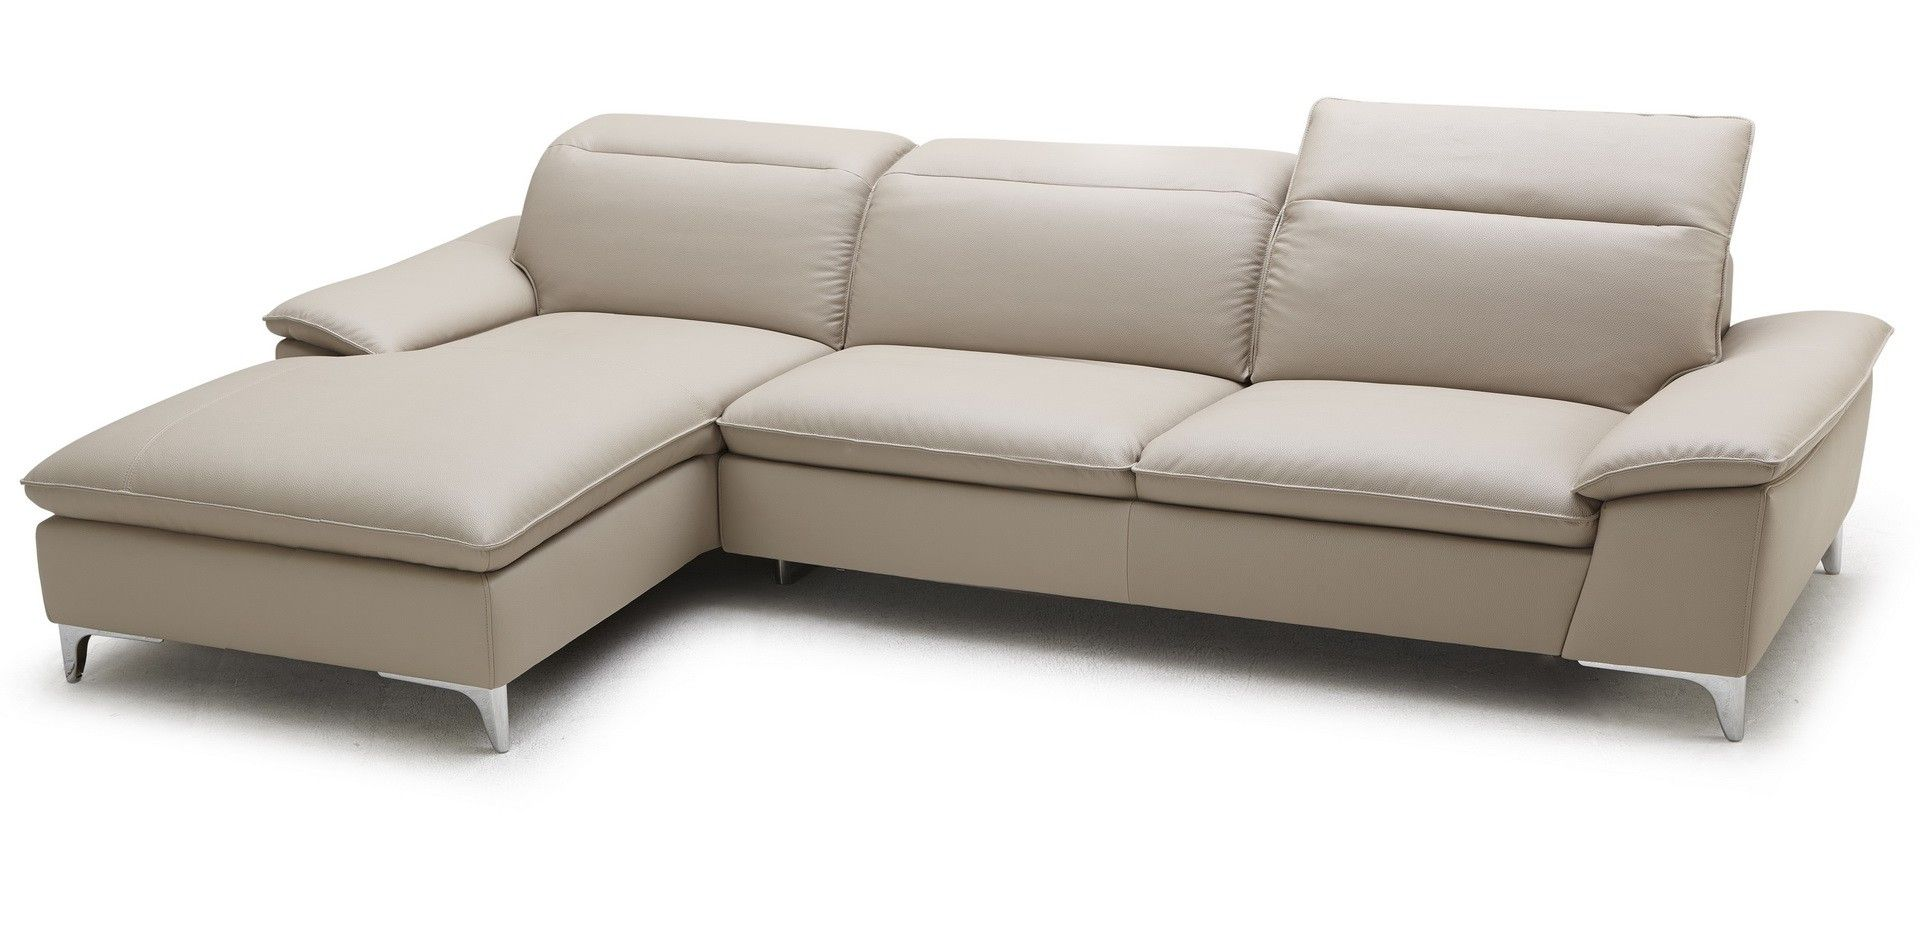 J&M 1911 Sectional Left Beige - The 1911 leather sectional features a well tapered design for an eye catching sleek look. The 1911 is expertly stitched, &* mixes high density foam with three ratchet headrests for maximum comfort.